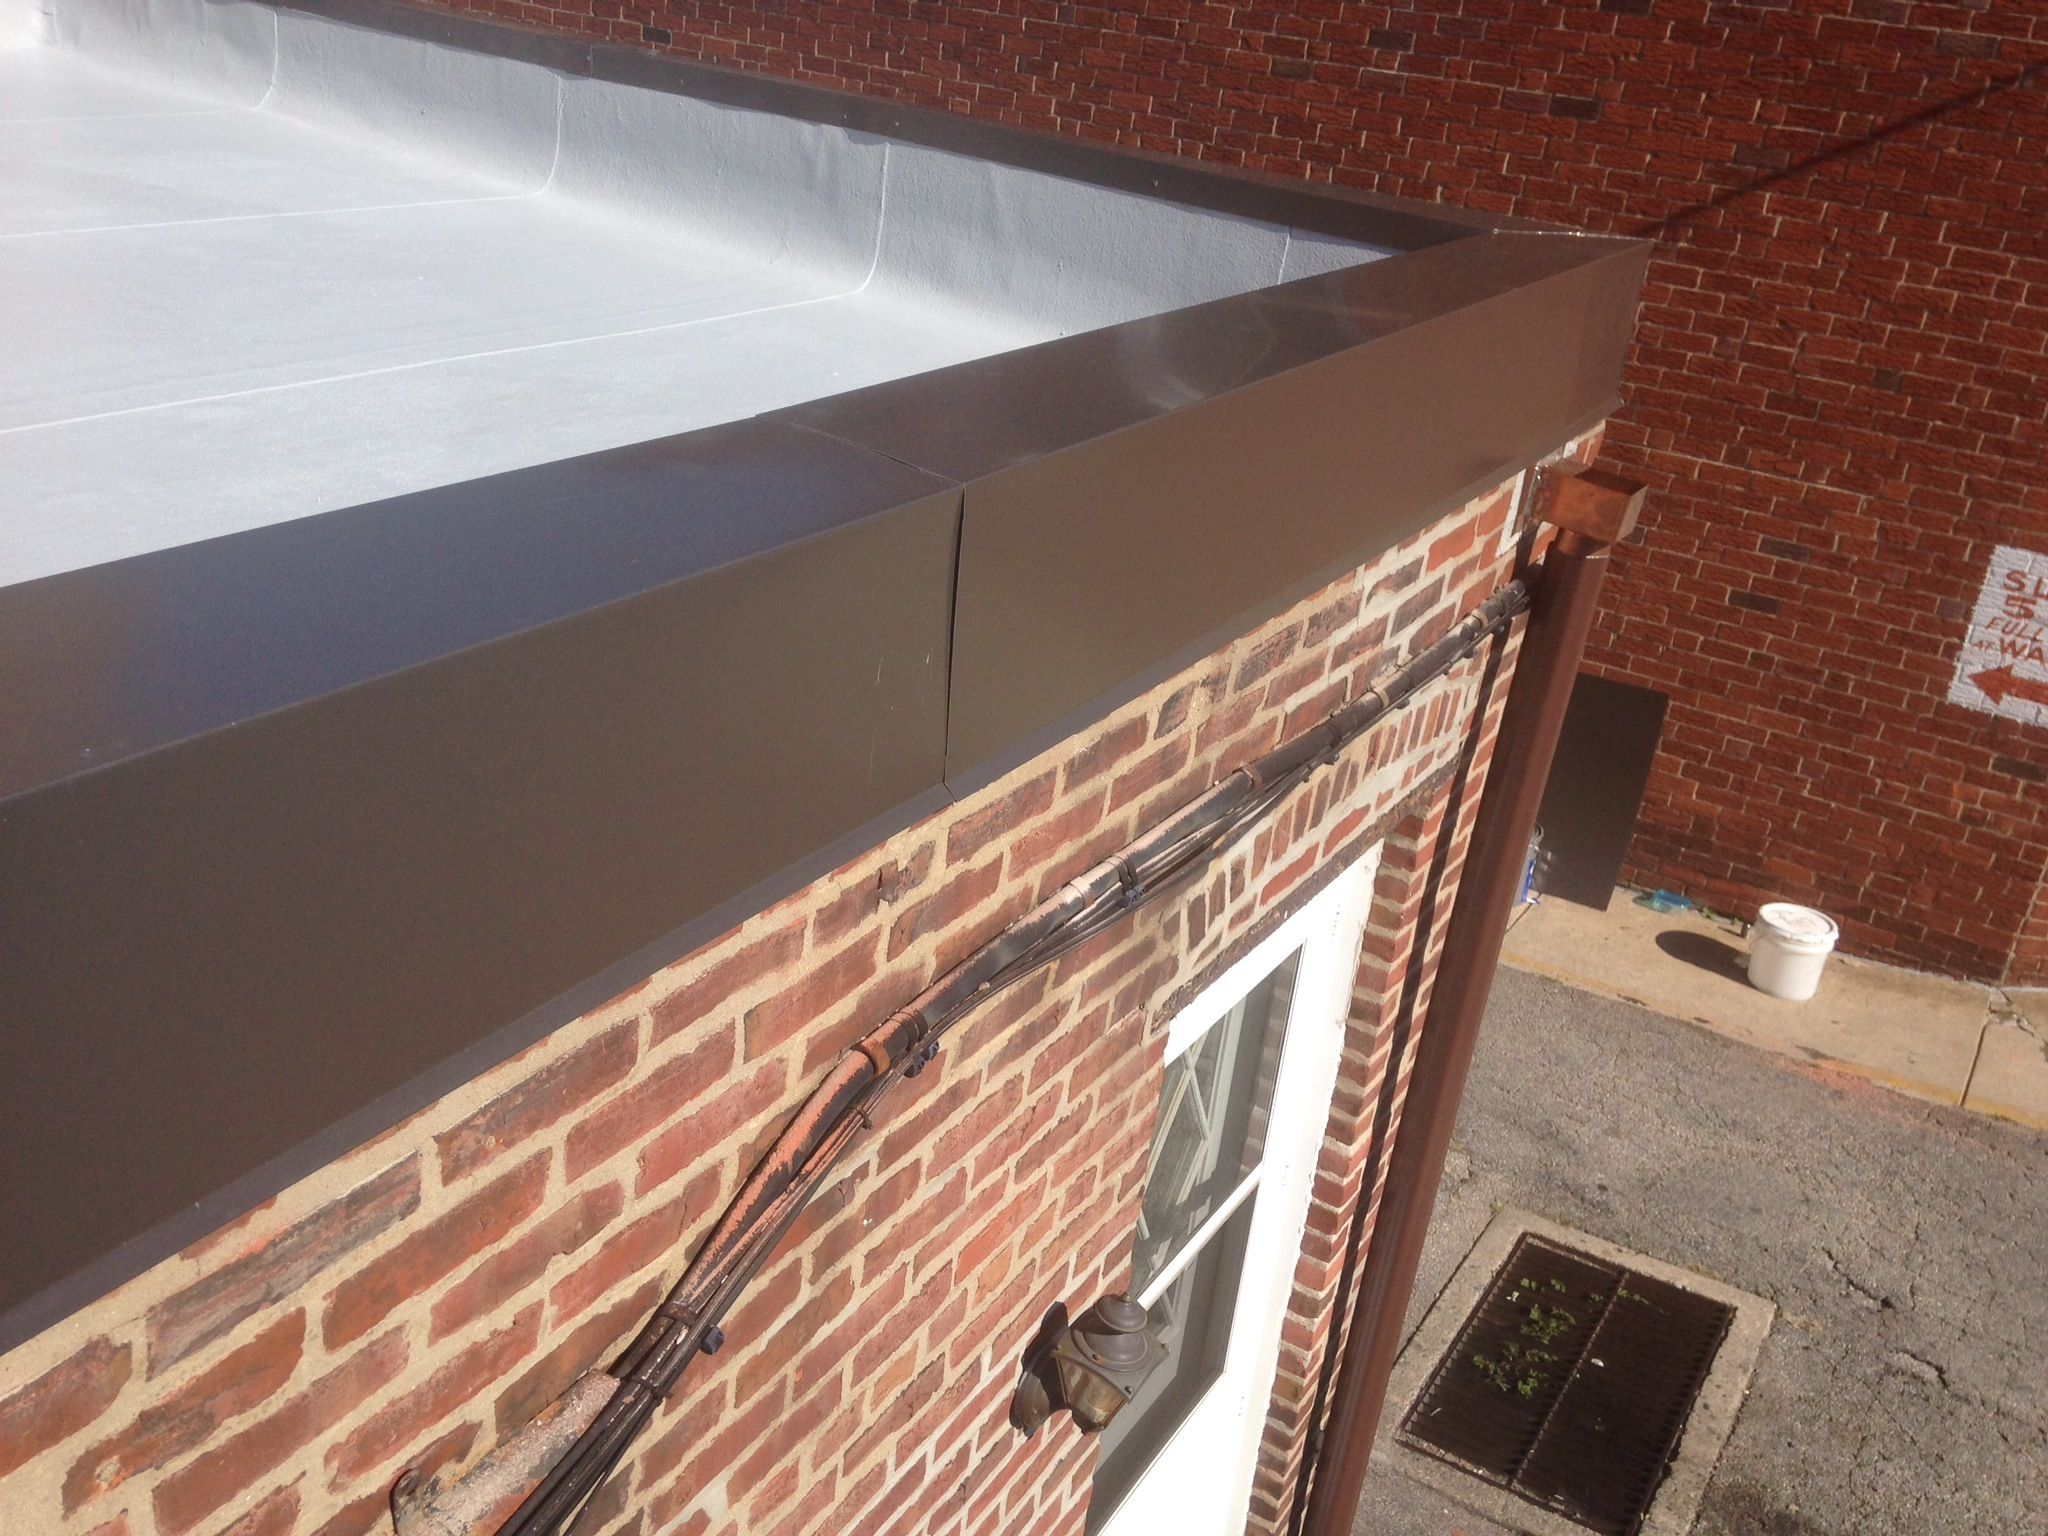 Modified Bitumen Flat Roof W Gray Silicone Coating 032 Bronze Aluminum Coping And Soldered Copper Scupper Bo Flat Roof Repair Roofing Contractors Homeowner